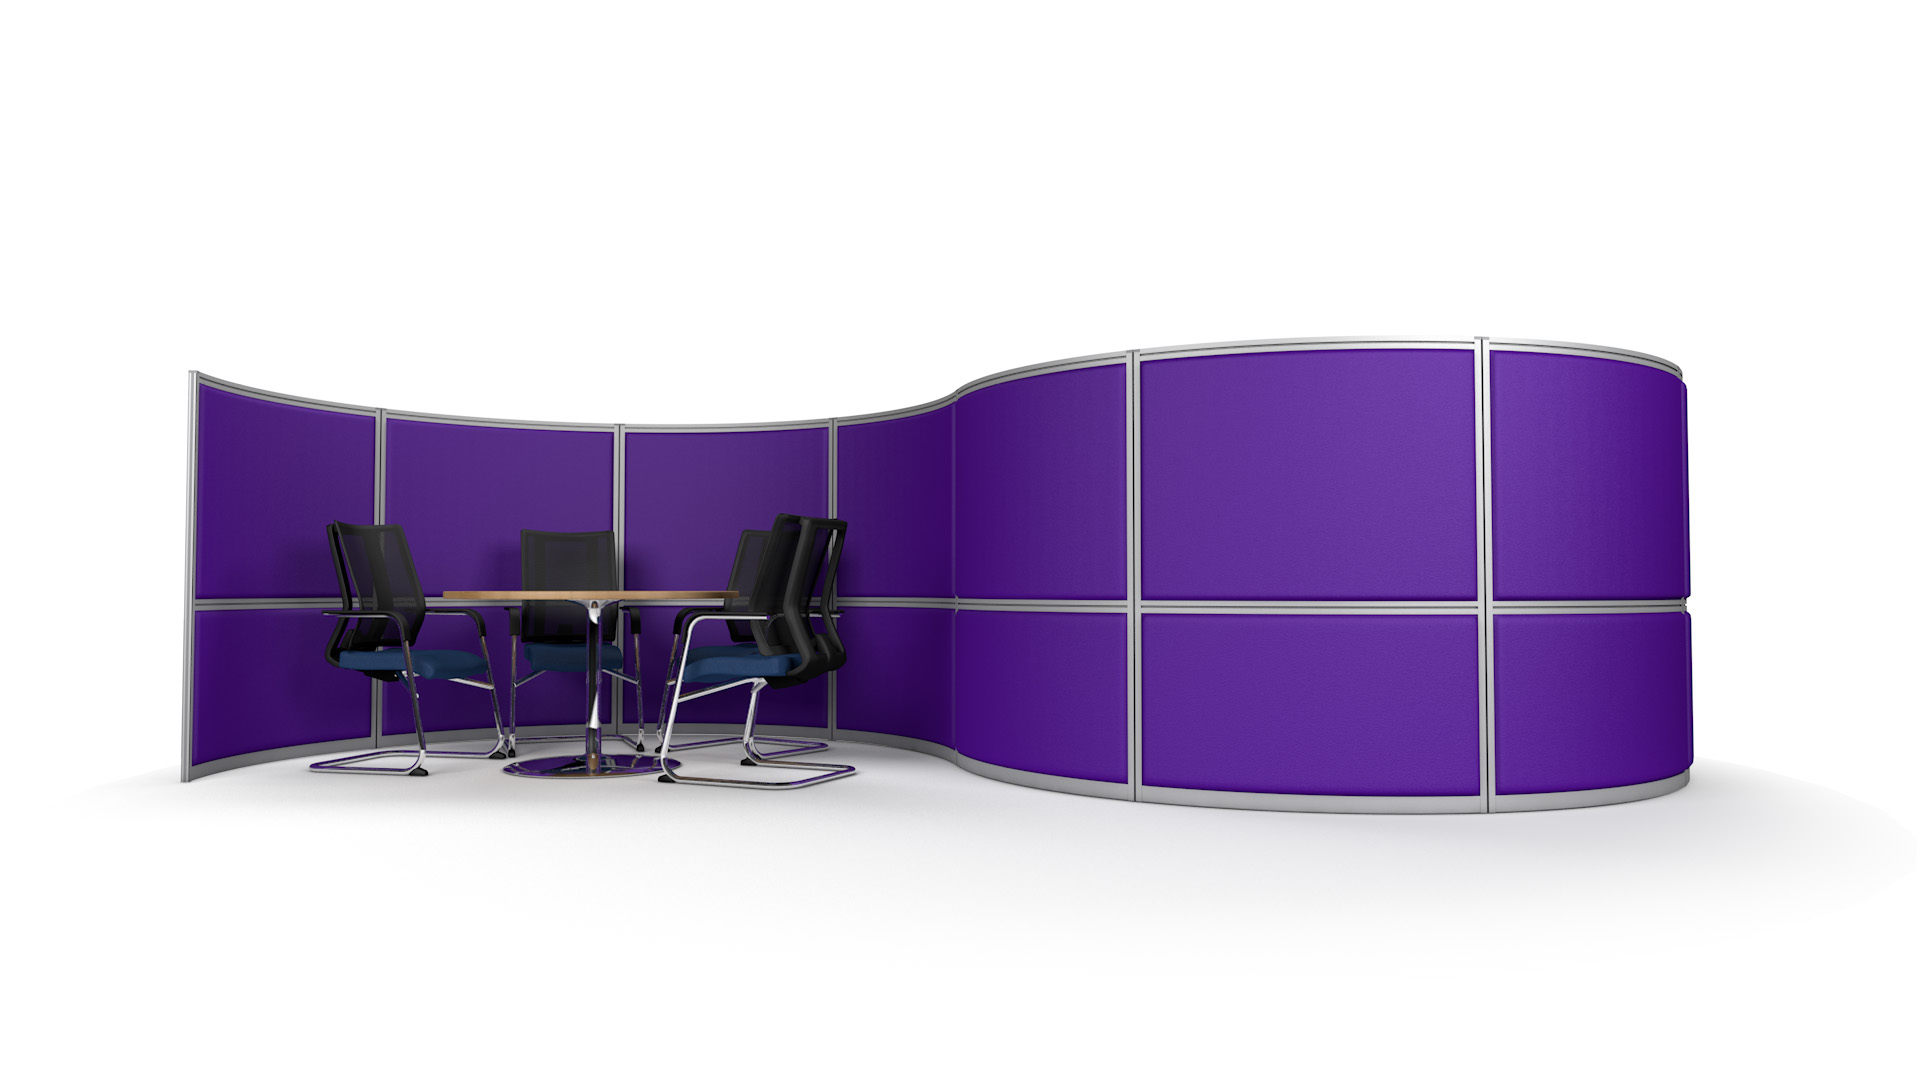 S-Shaped Acoustic Office Screen Wall 6m With Two Meeting Booths